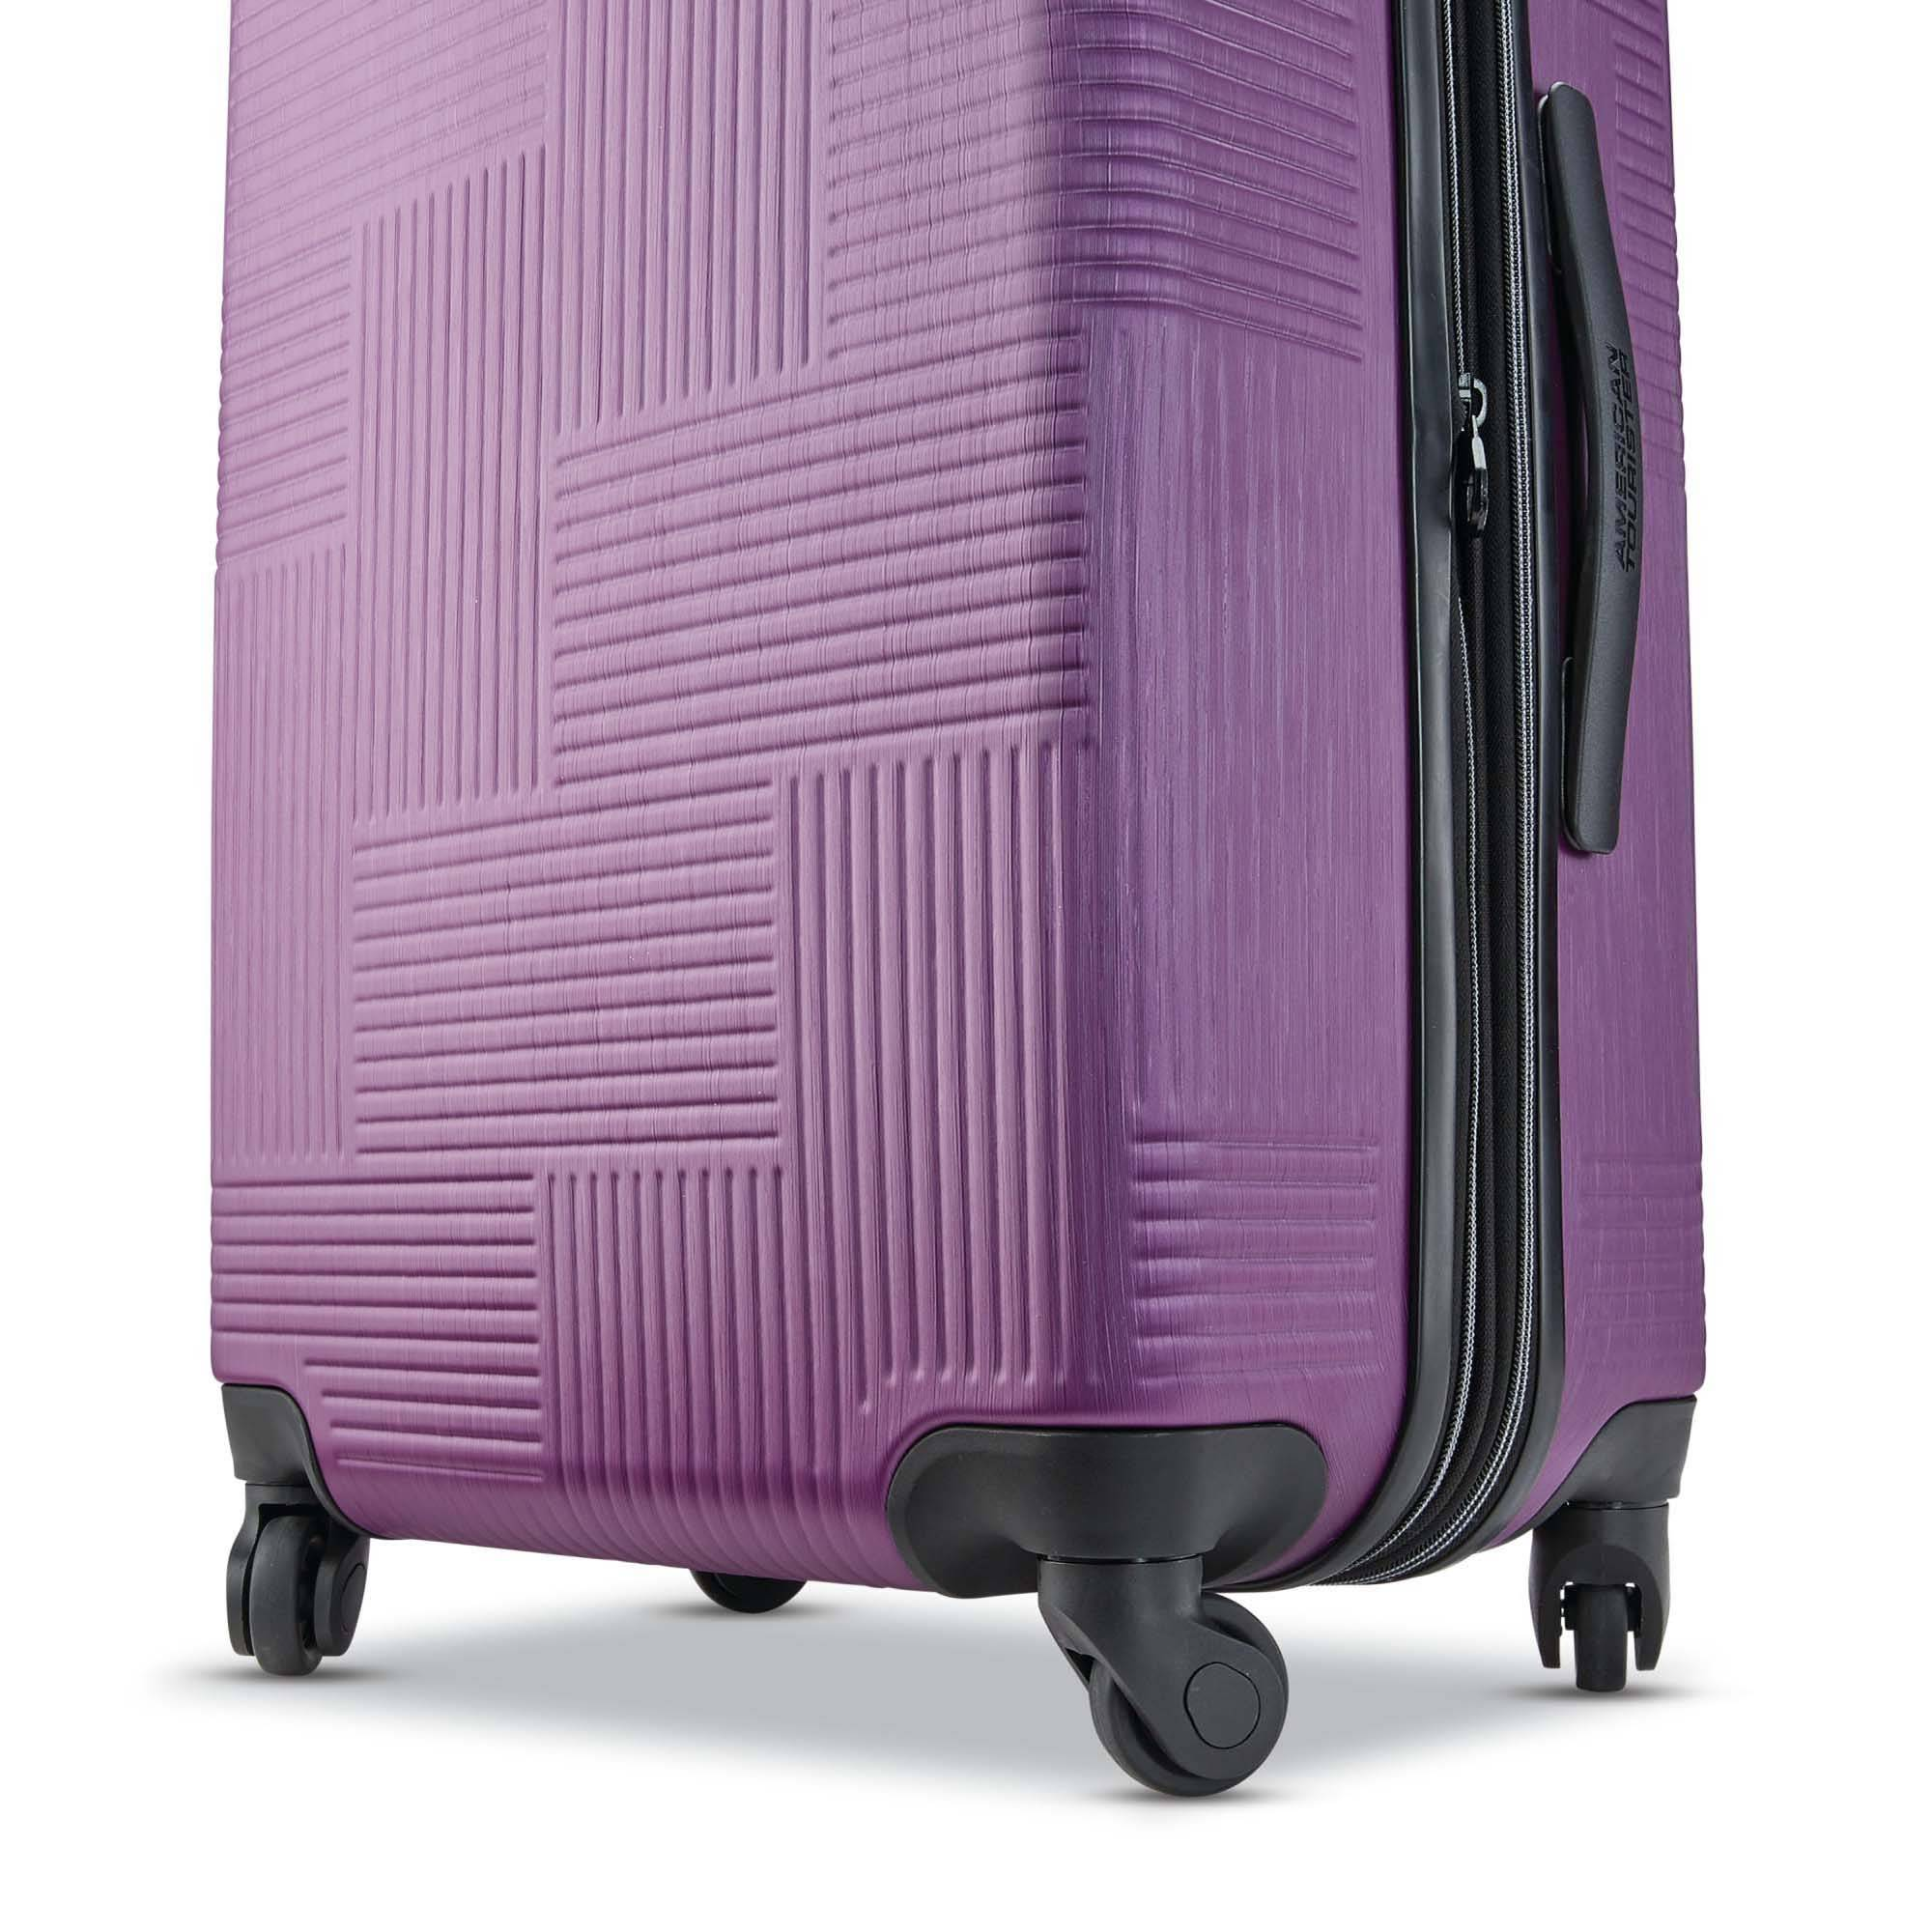 4a22cfb54c ... American Tourister Stratum Xlt 20 Spinner Luggage View 9 ...